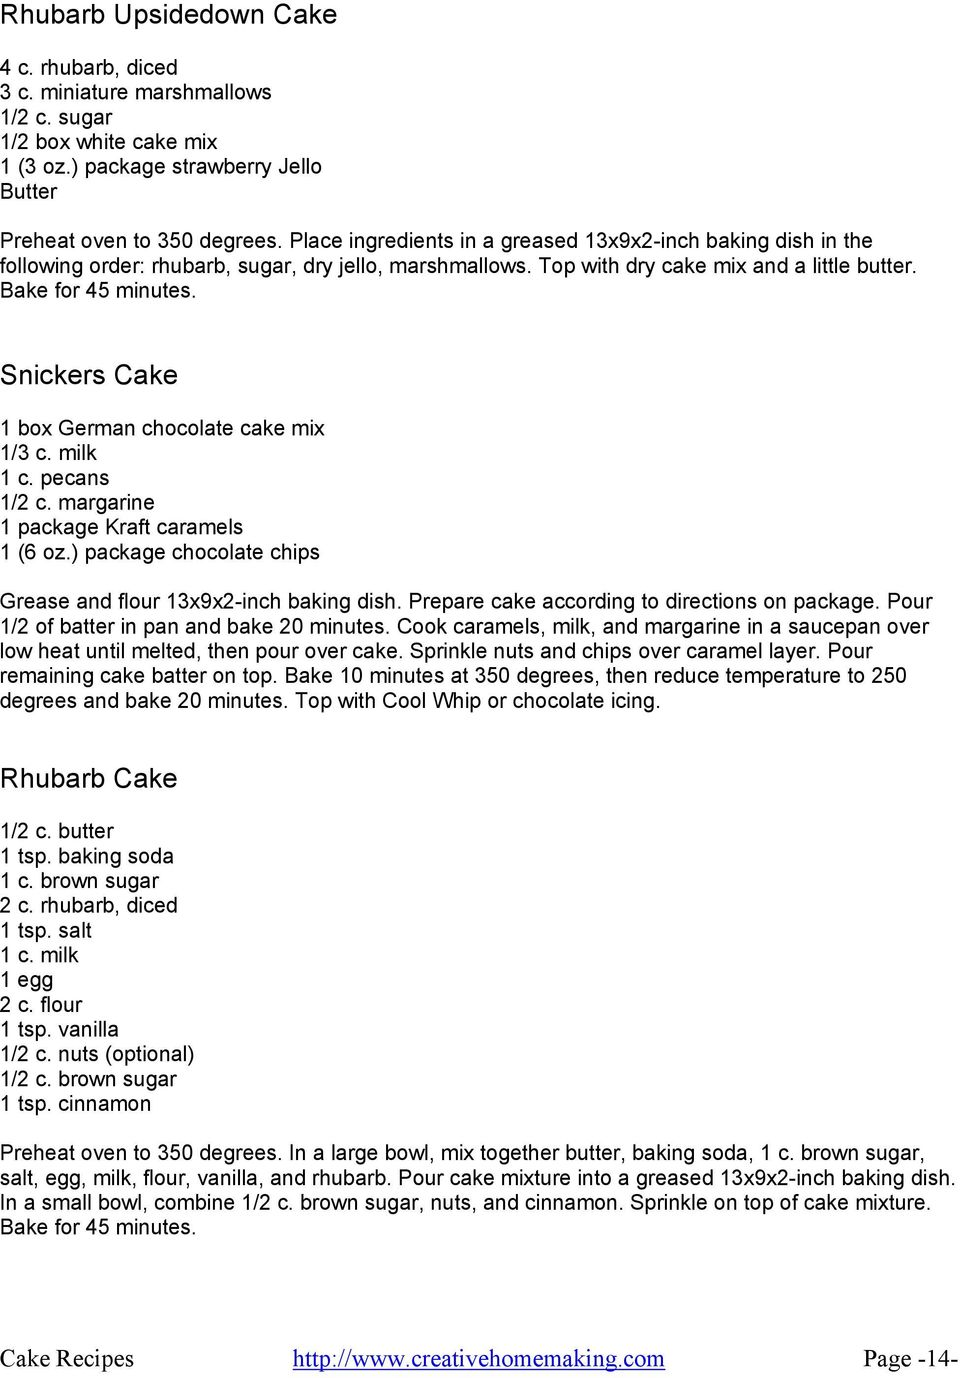 Snickers Cake 1 box German chocolate cake mix 1/3 c. milk 1 c. pecans 1/2 c. margarine 1 package Kraft caramels 1 (6 oz.) package chocolate chips Grease and flour 13x9x2-inch baking dish.